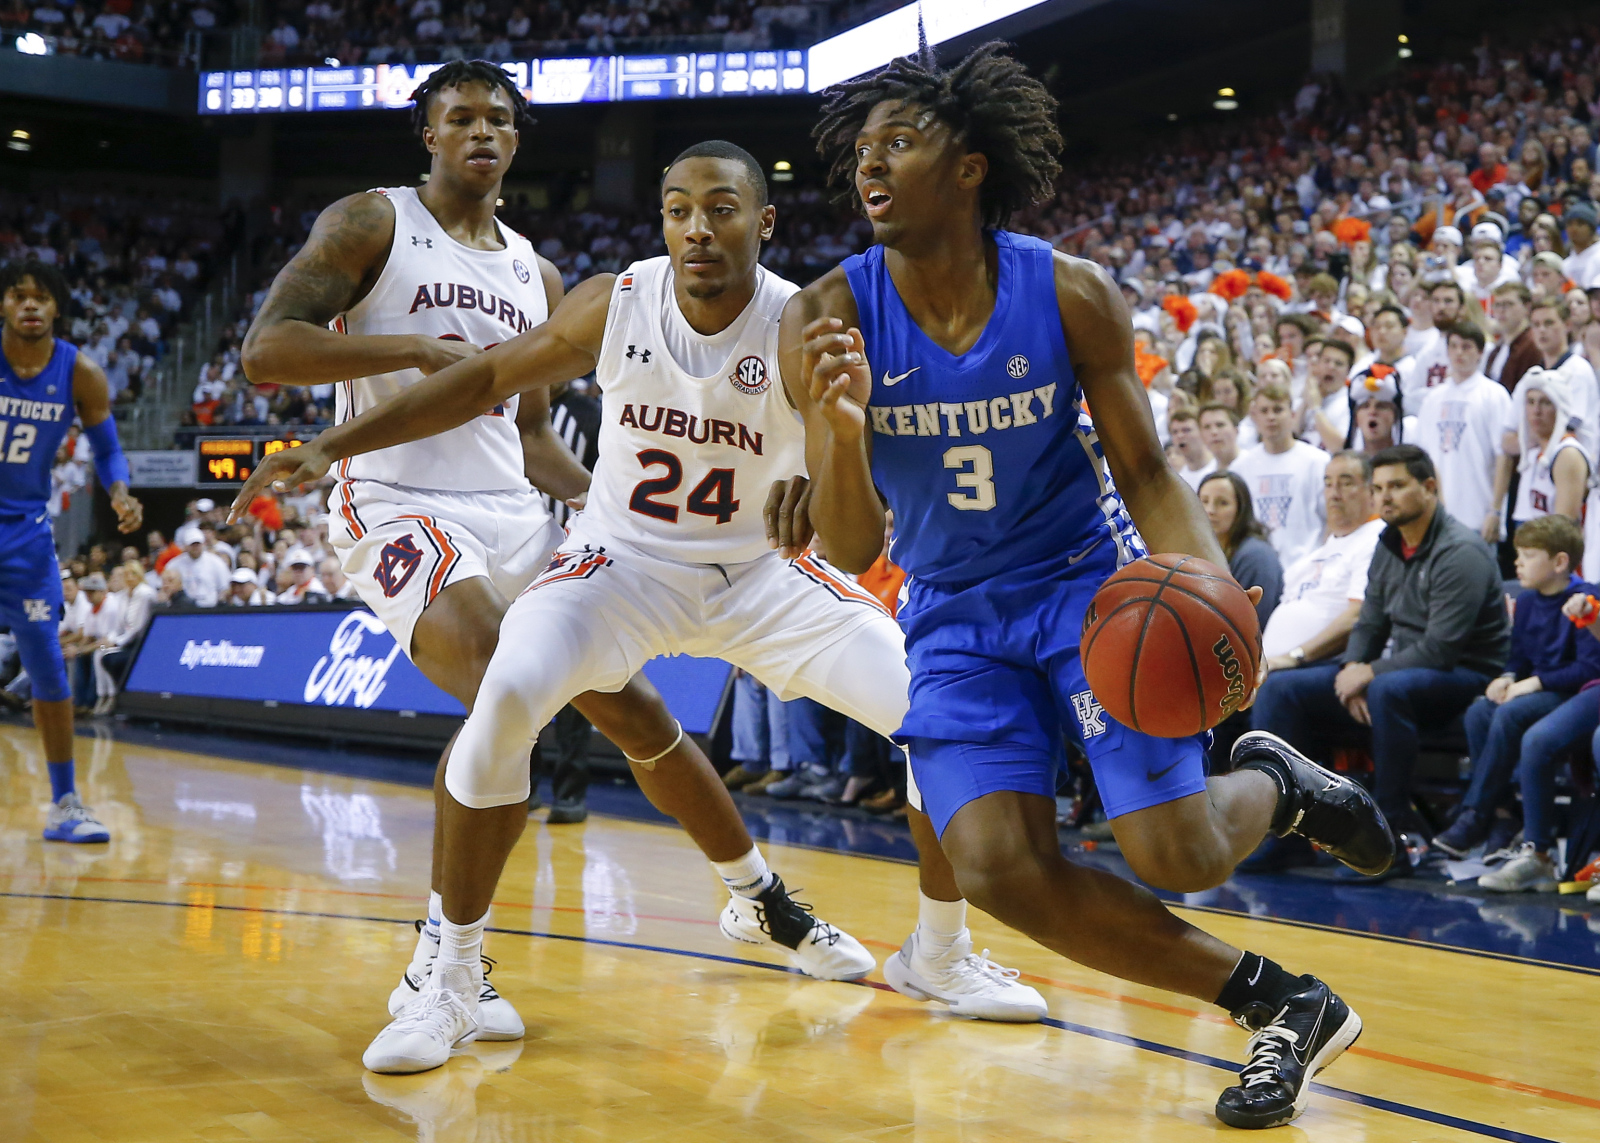 College basketball 5 best games of the week: Auburn-Kentucky rematch for SEC supremacy